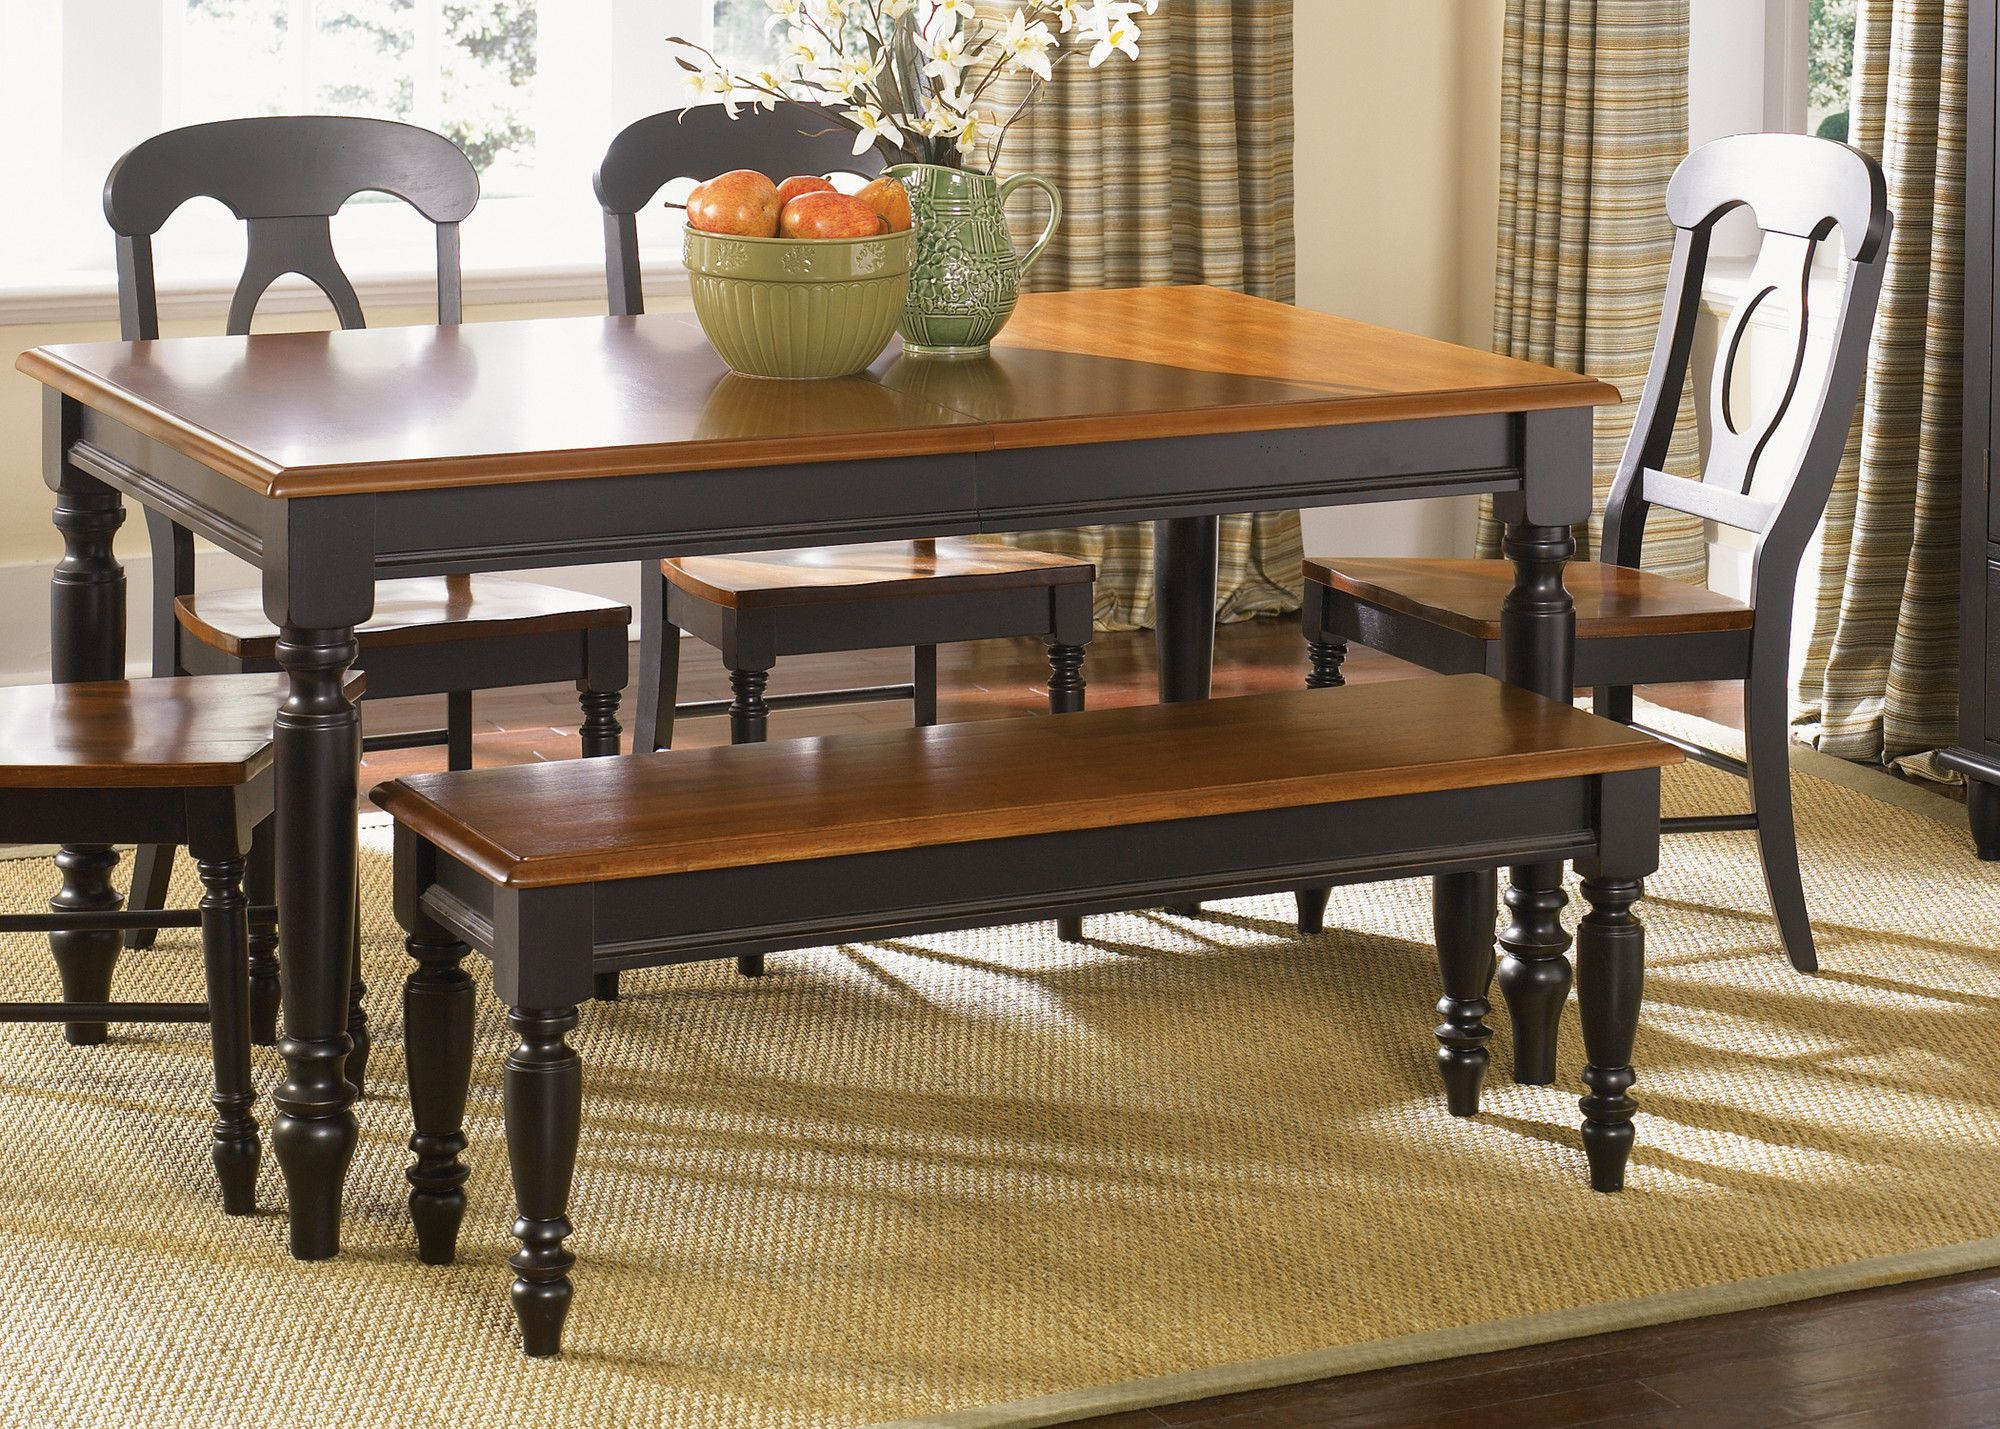 Morris Bench Black Kitchen Table Kitchen Table Settings Dining Table Chairs